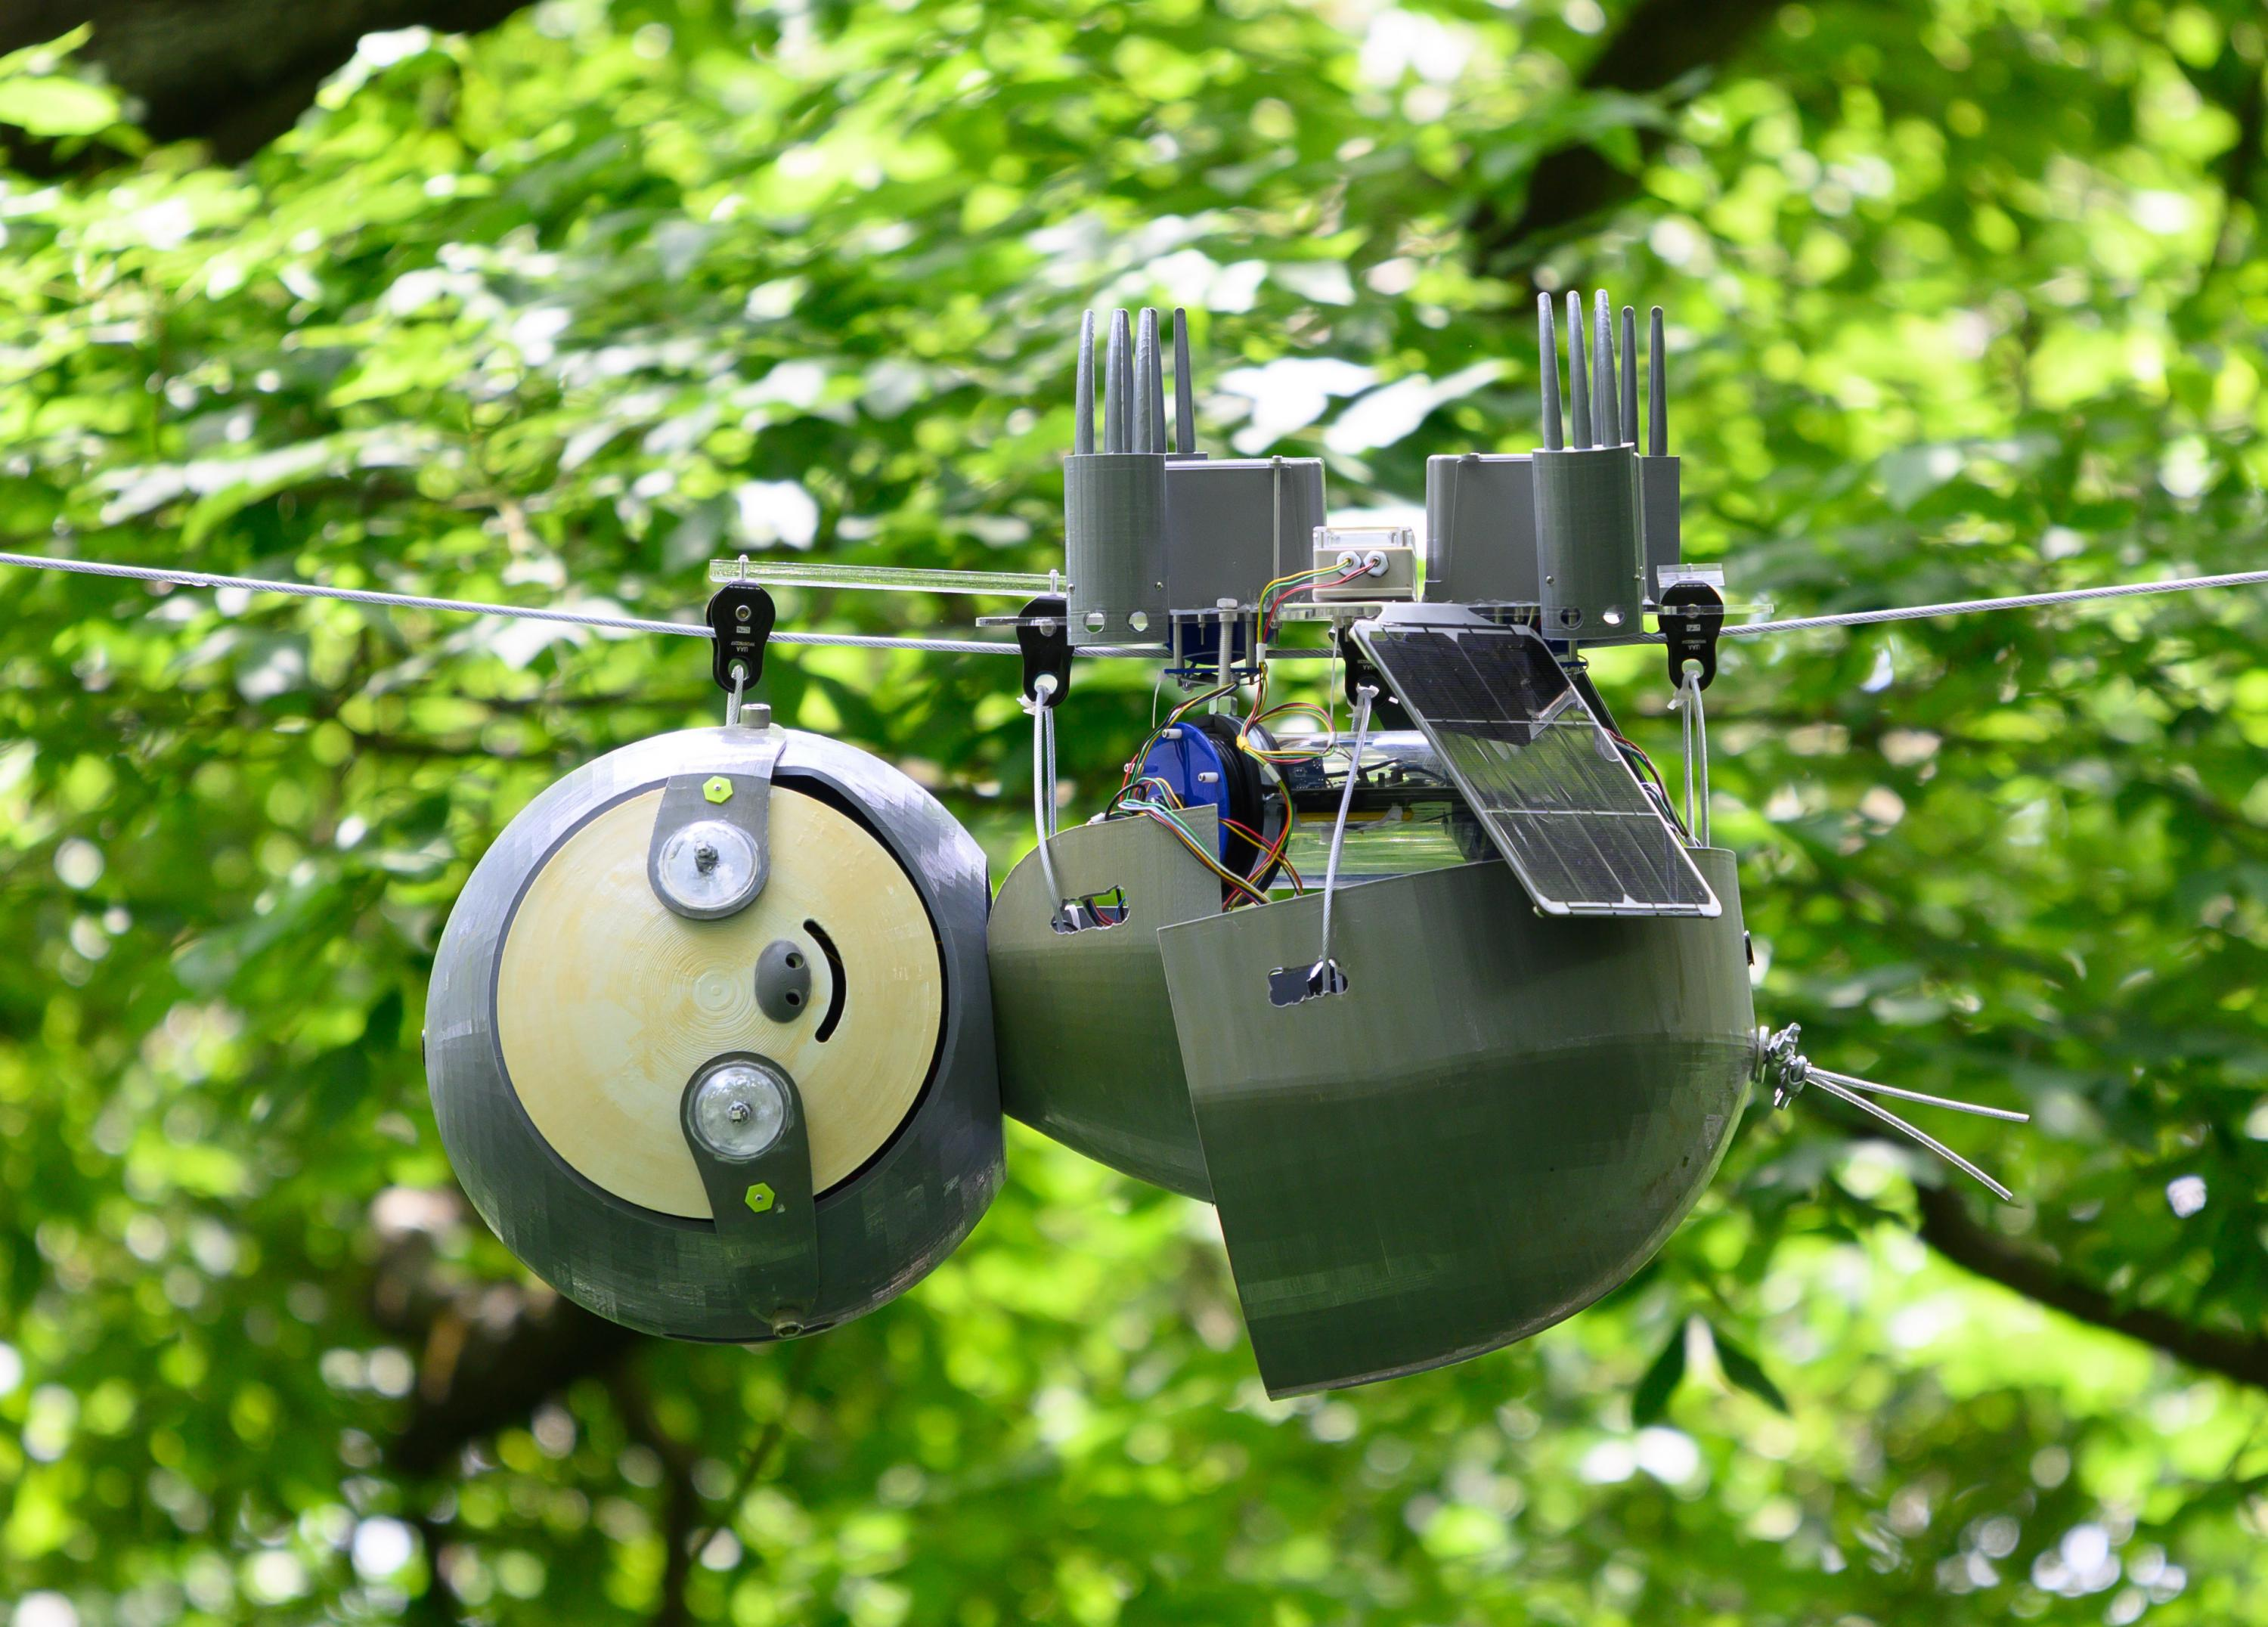 This robotic sloth with 3D printed components helps to preserve the Atlanta Botanical Backyard